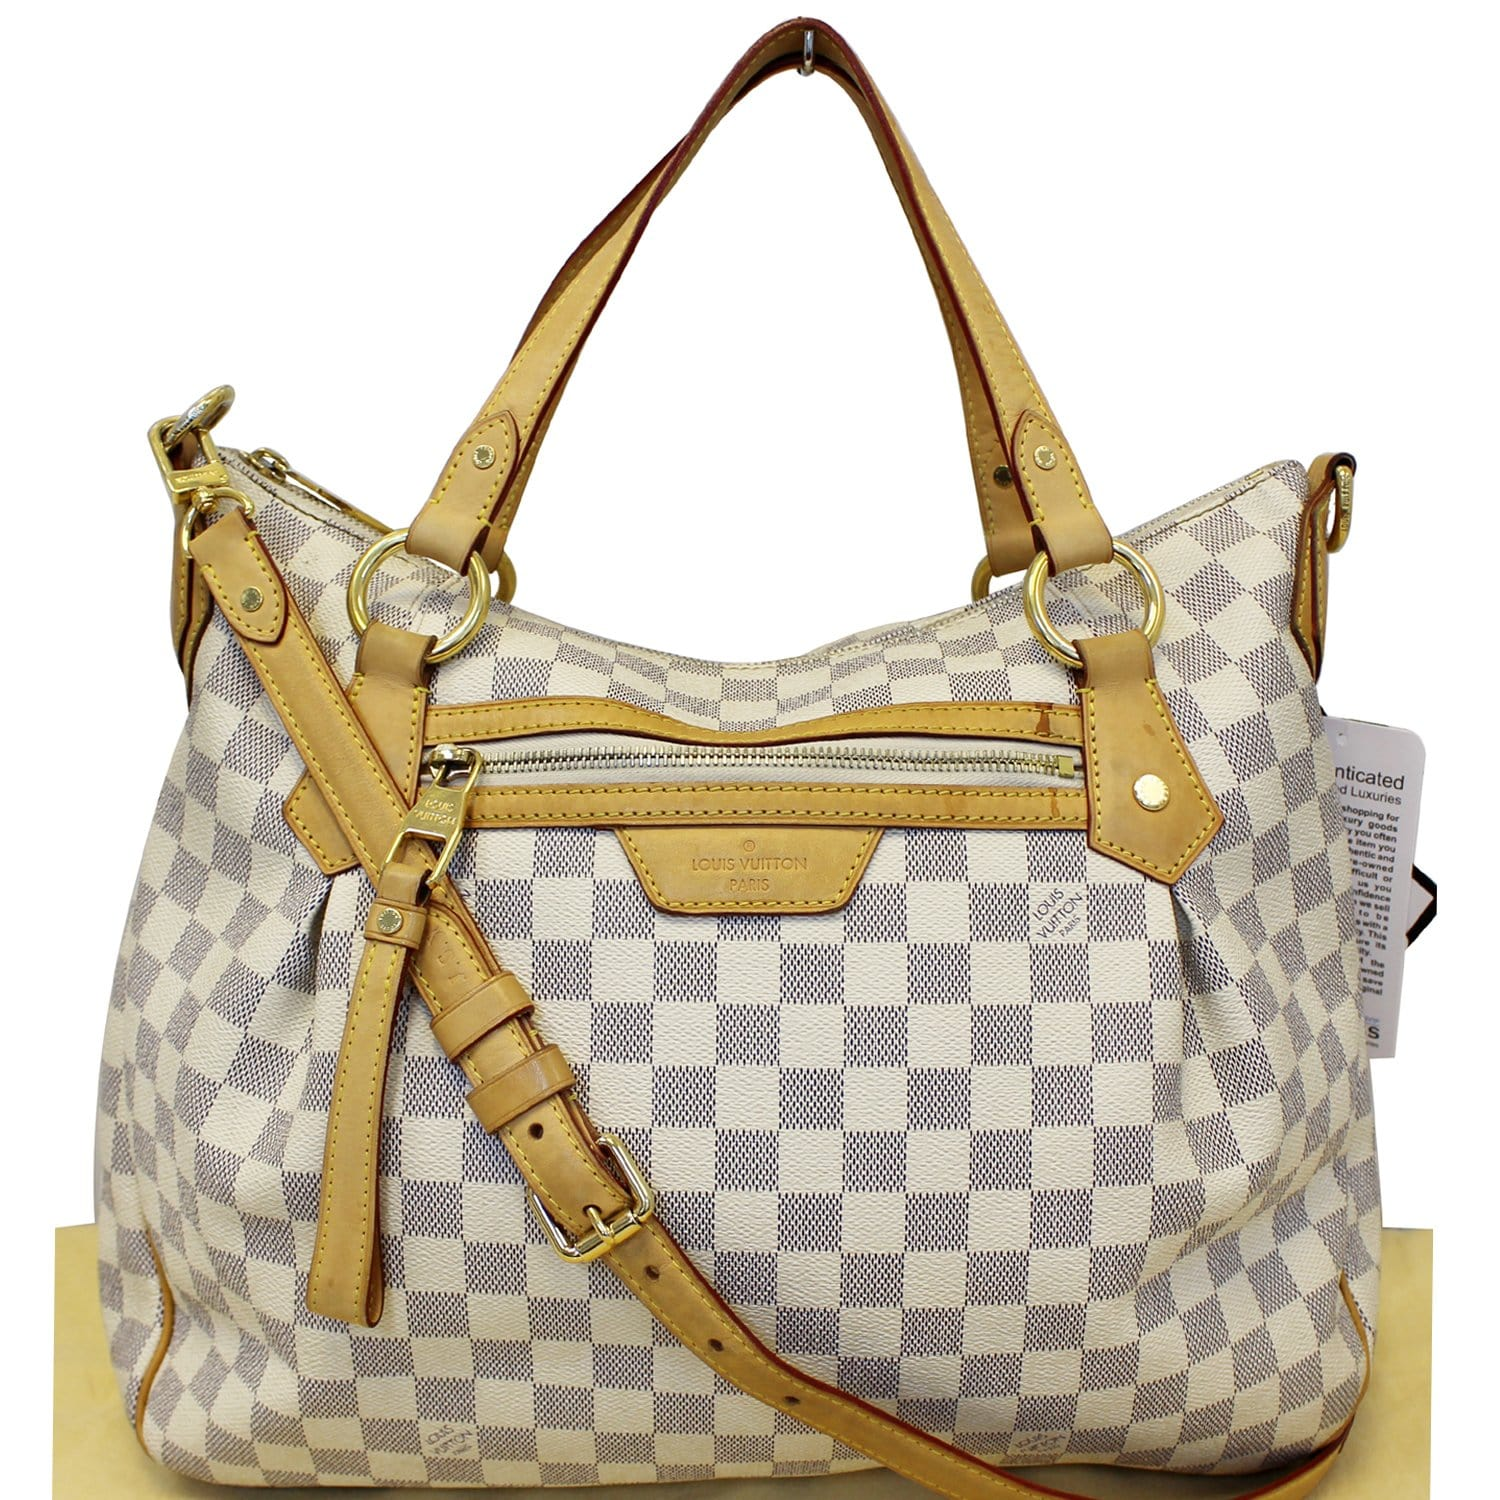 20b2b8ca6dbf LOUIS VUITTON Evora MM Damier Azur Tote Shoulder Bag-US